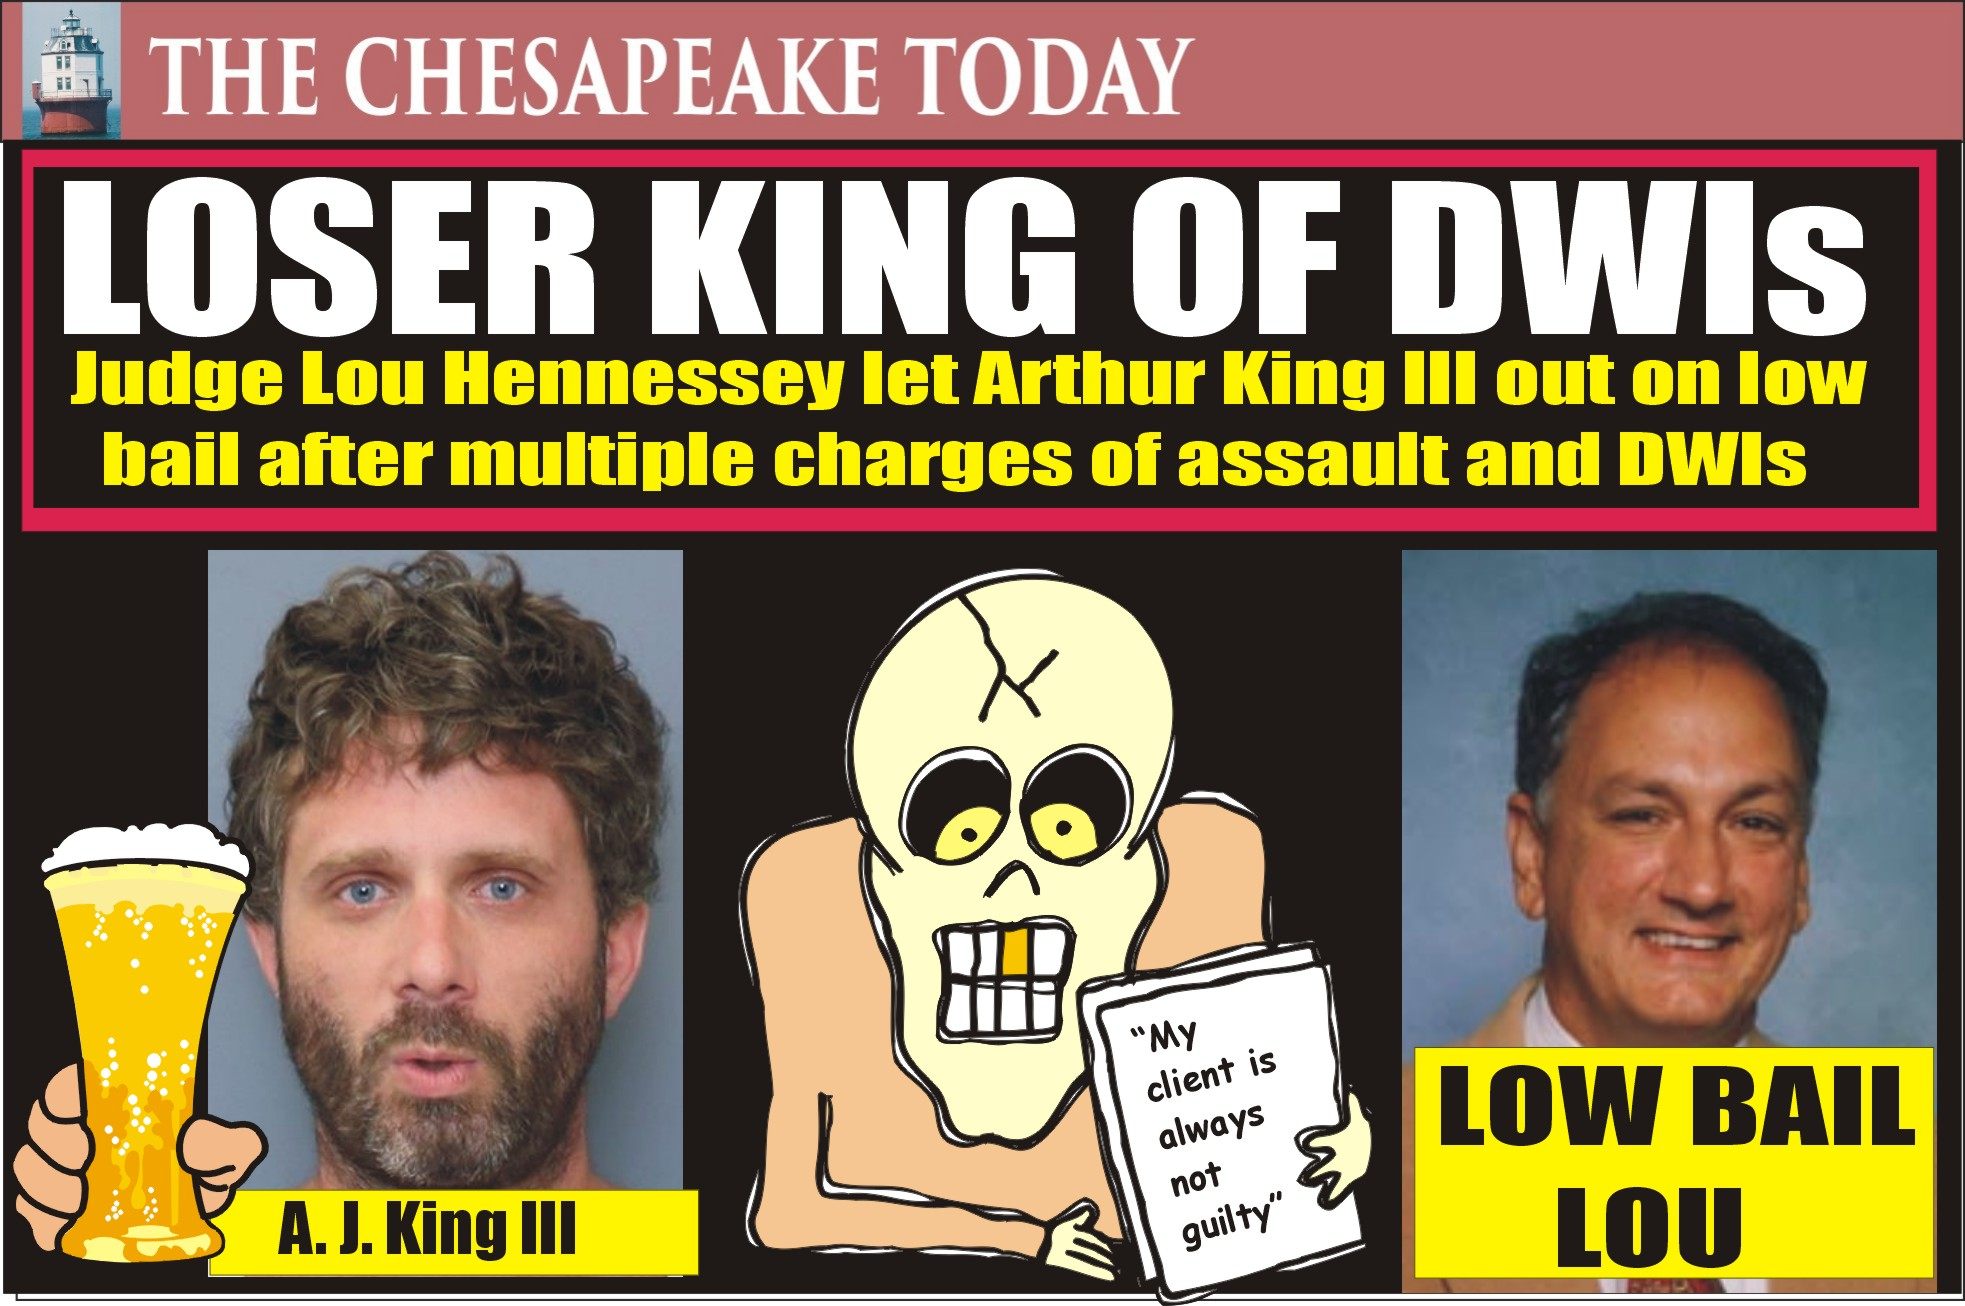 DWI HIT PARADE: Arthur John King III Charged With DUI, Hit and Run and Nasty Spitting on Officer: Judge Lou Hennessey Set Low Bail Allowing King to Look For Someone to Kill on Area Highways